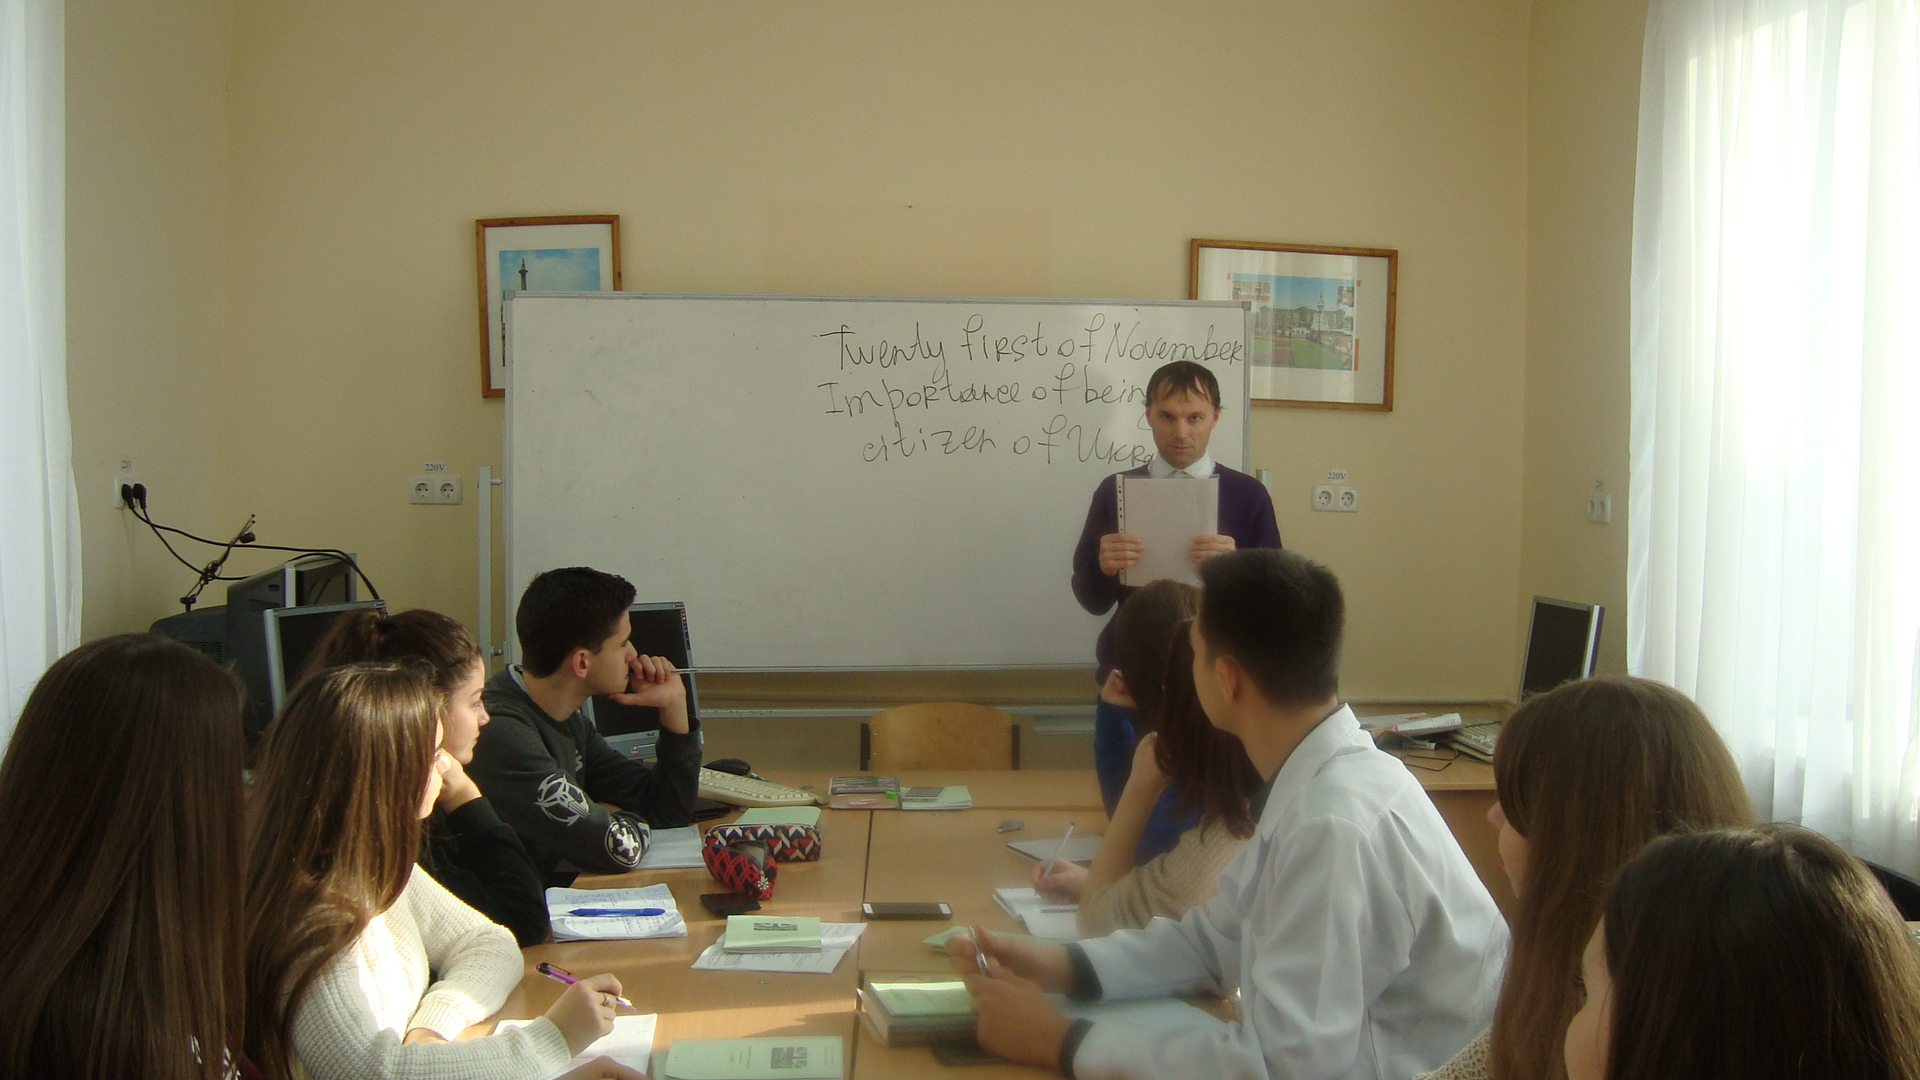 EDUCATIONAL LECTURE - IMPORTANCE OF BEING THE CITIZEN OF UKRAINE.